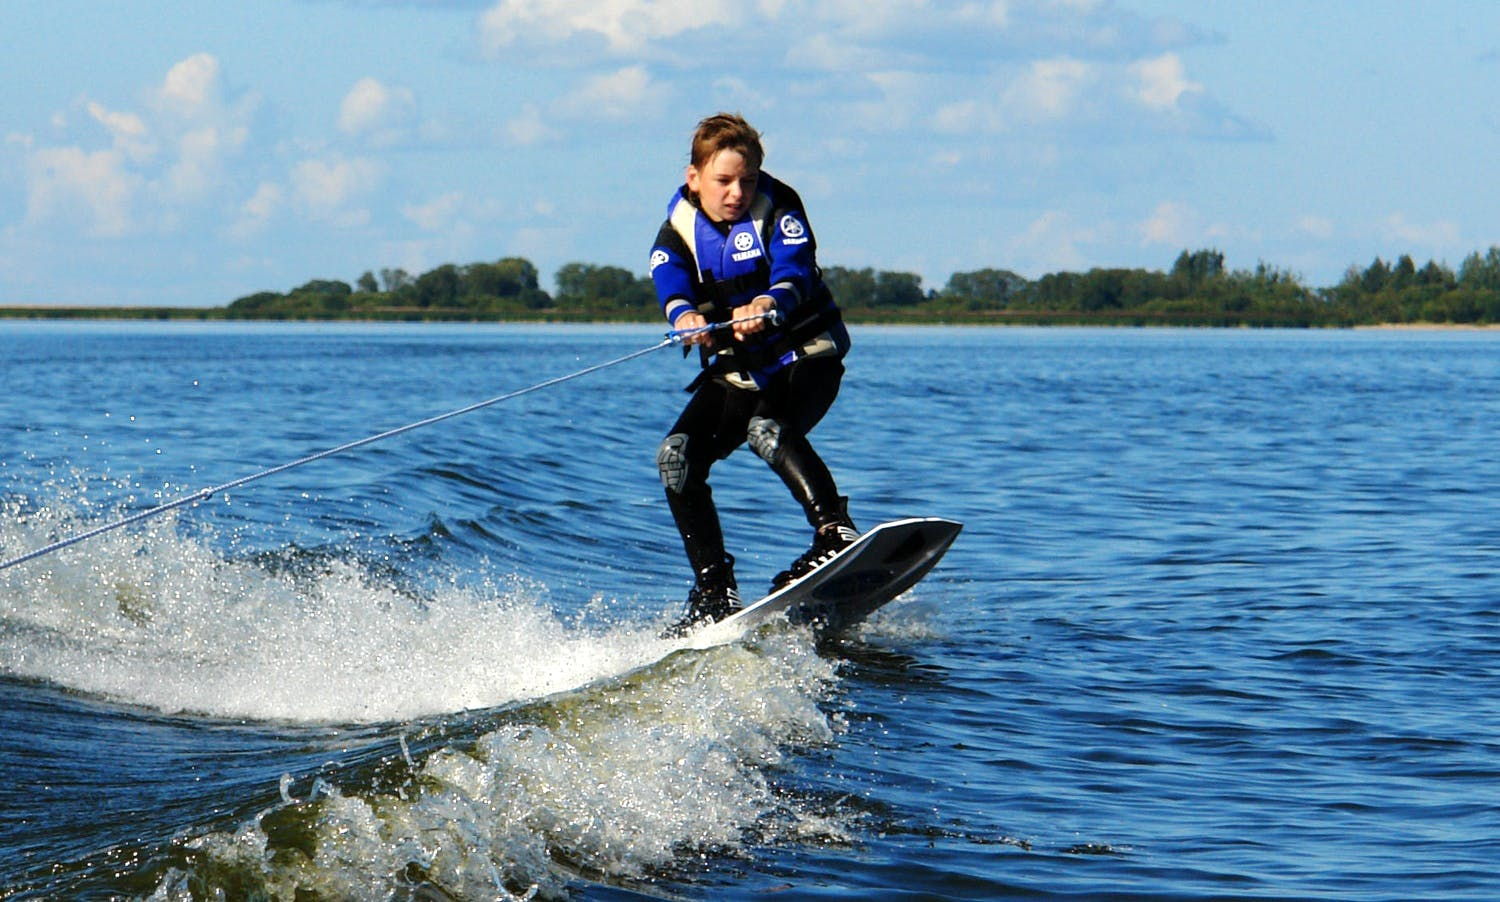 Enjoy Wakeboarding in Majkovi, Croating